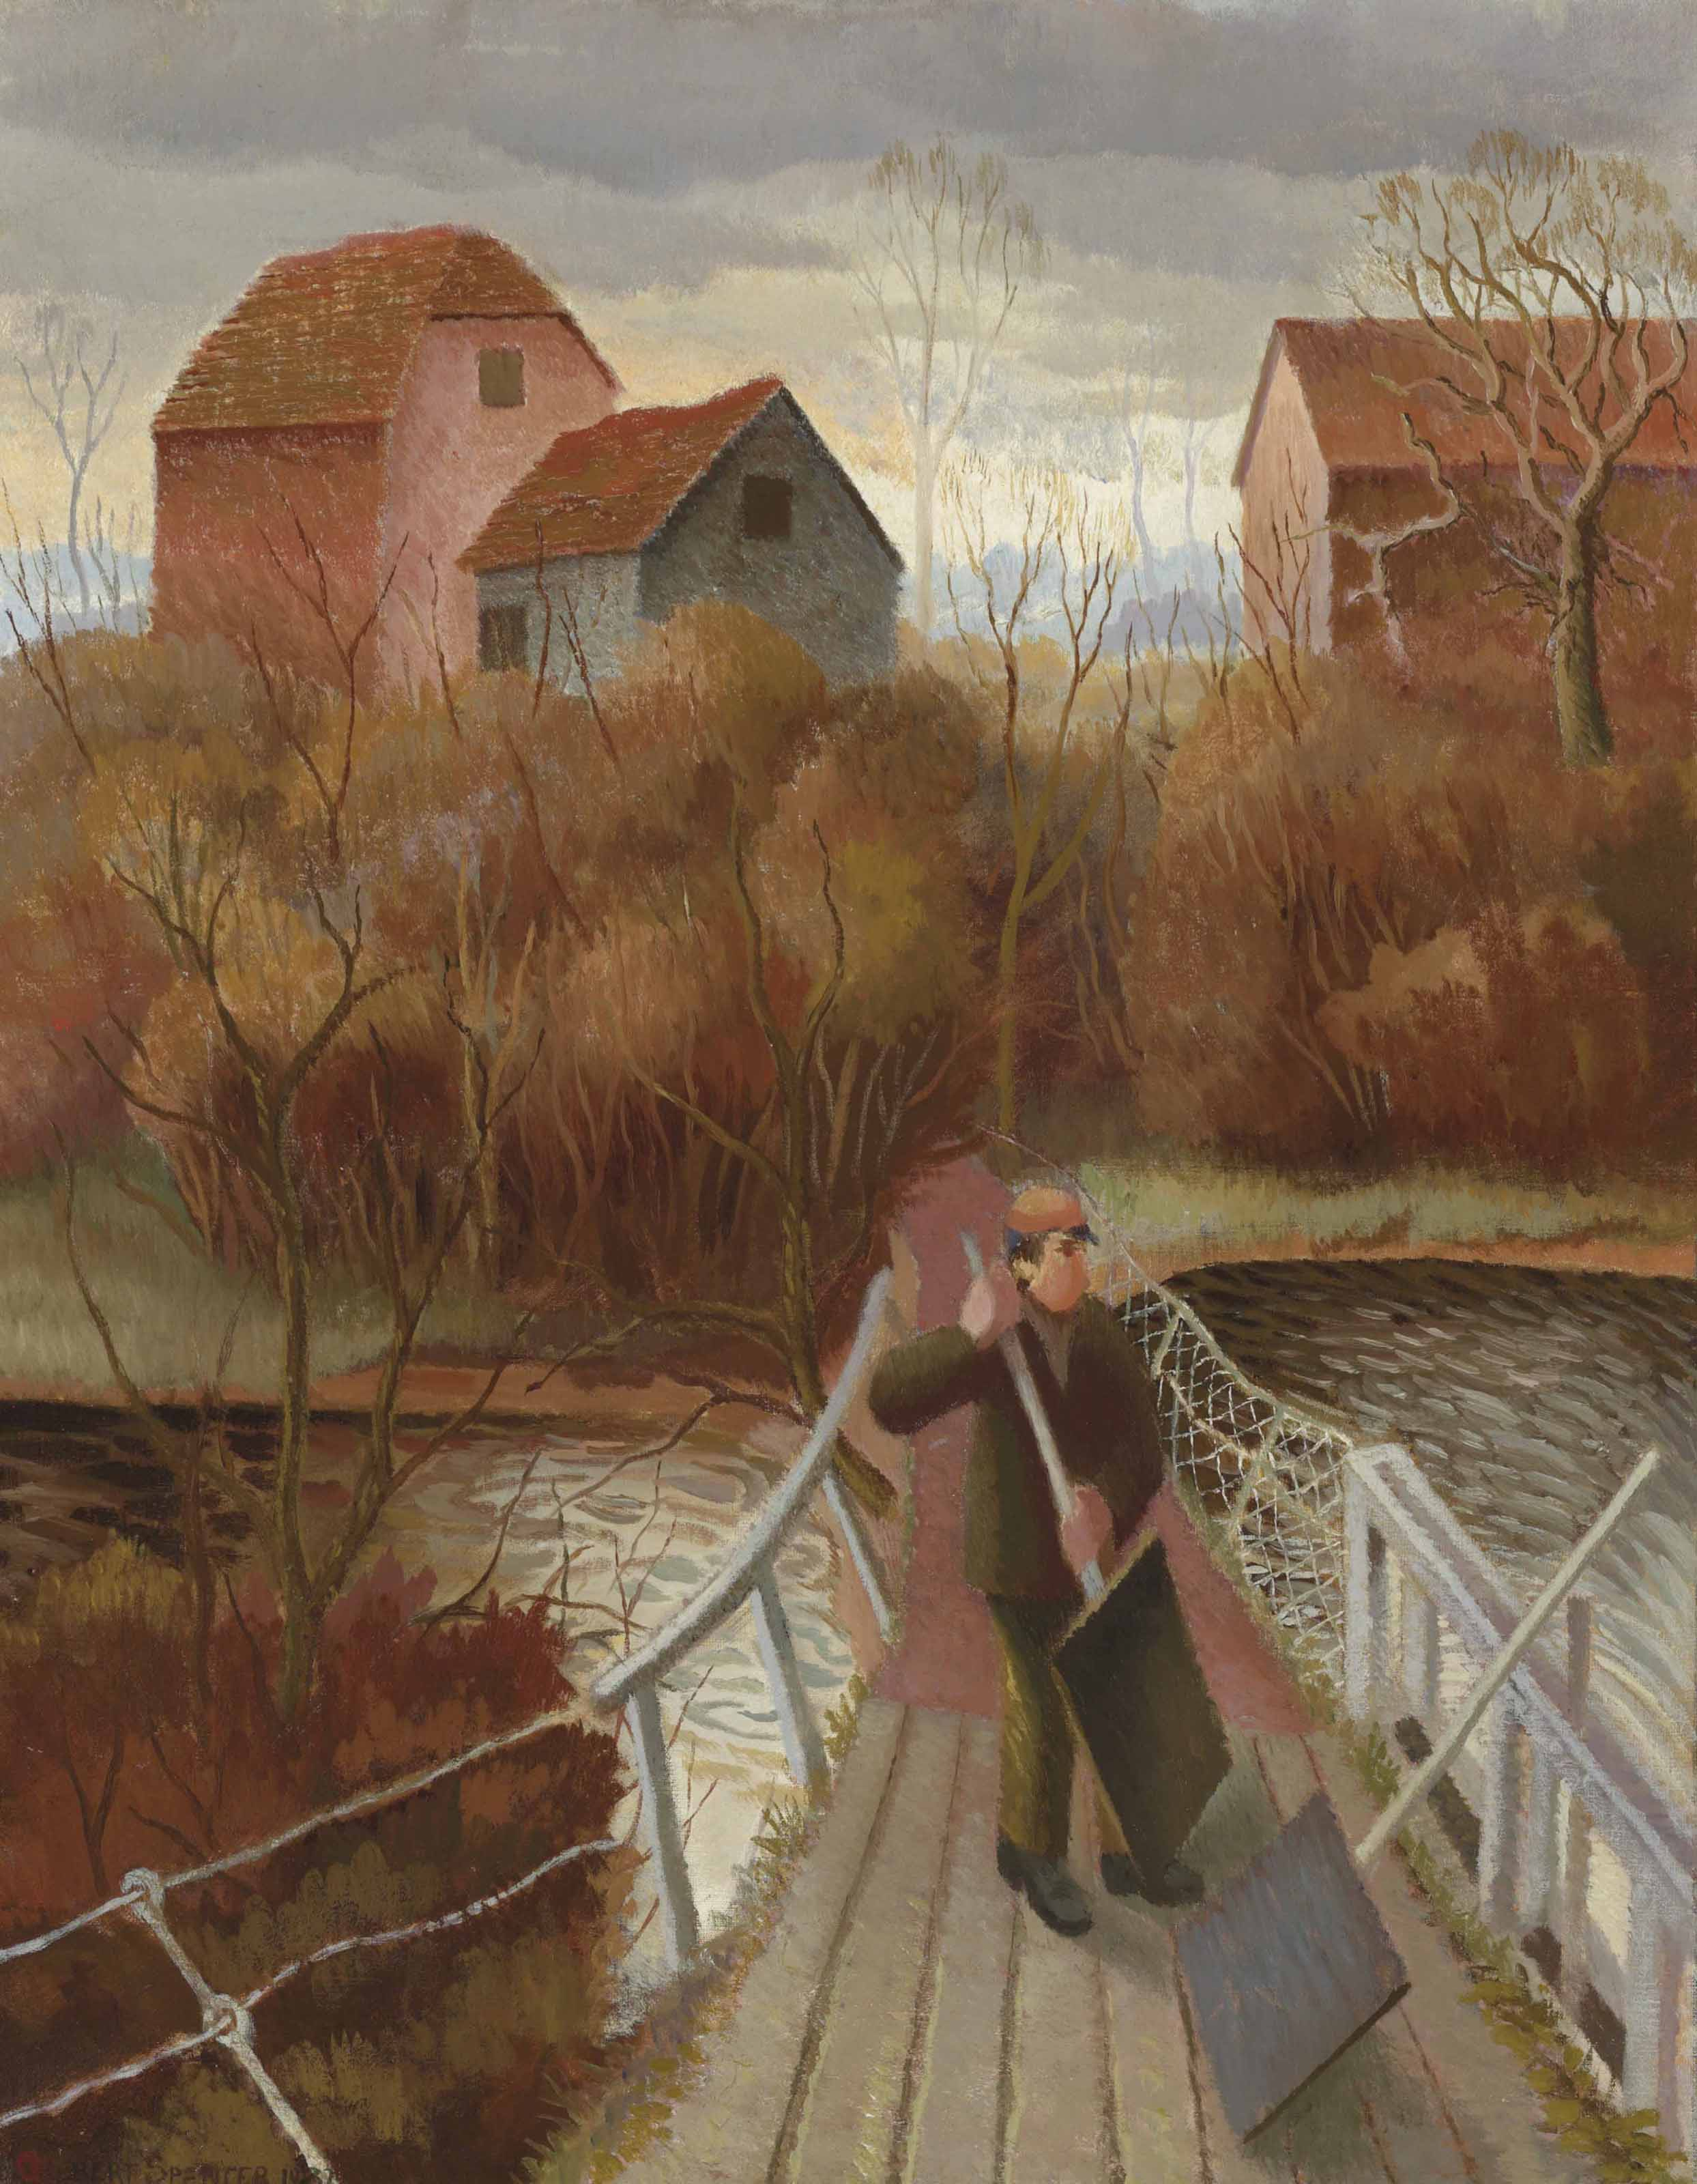 Man at a sluice gate on the Thames